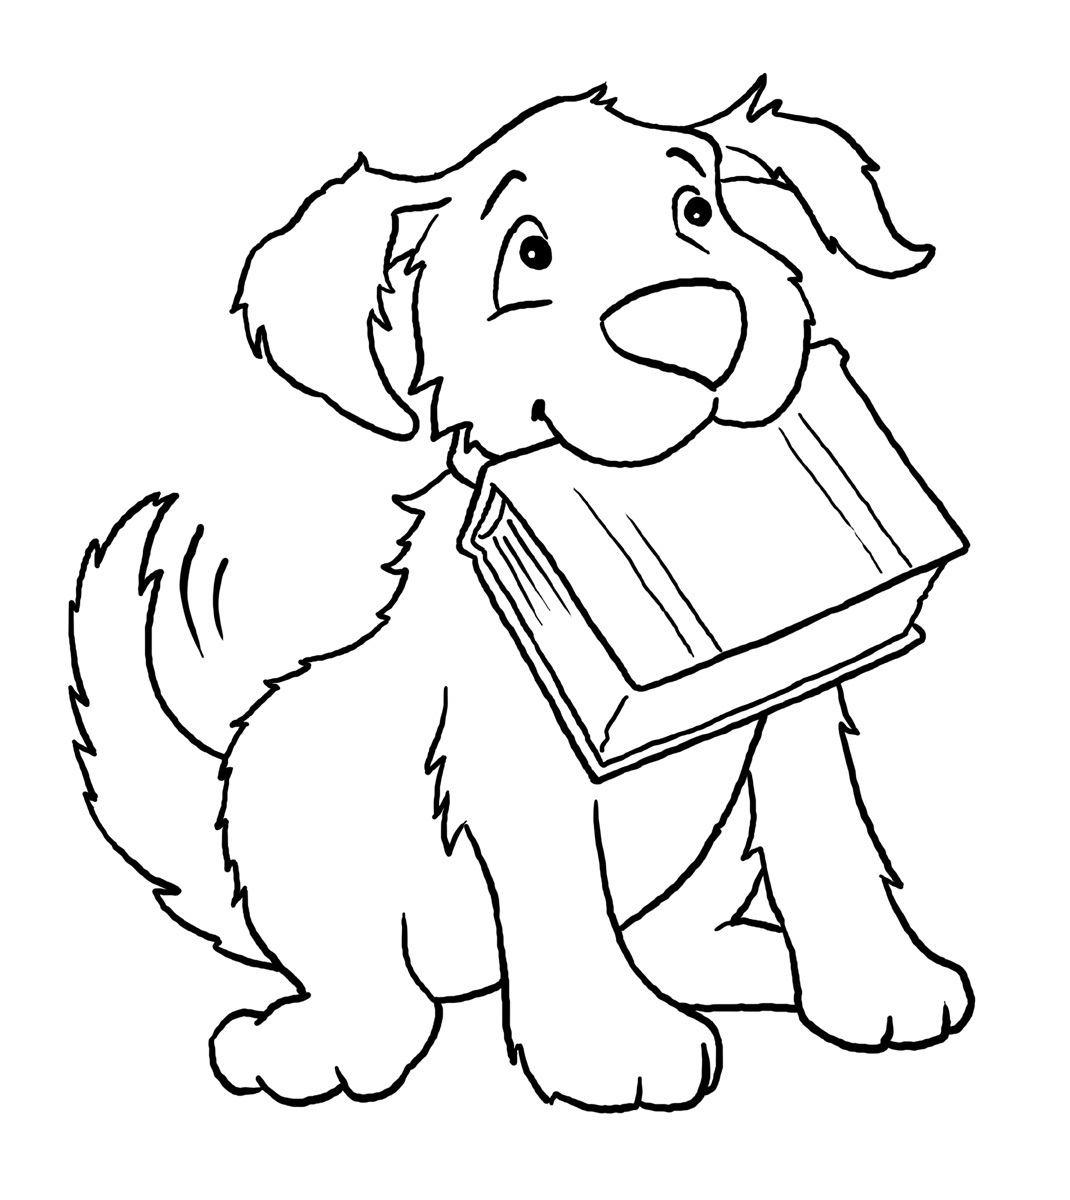 best coloring pages for kids - free printable dog coloring pages for kids